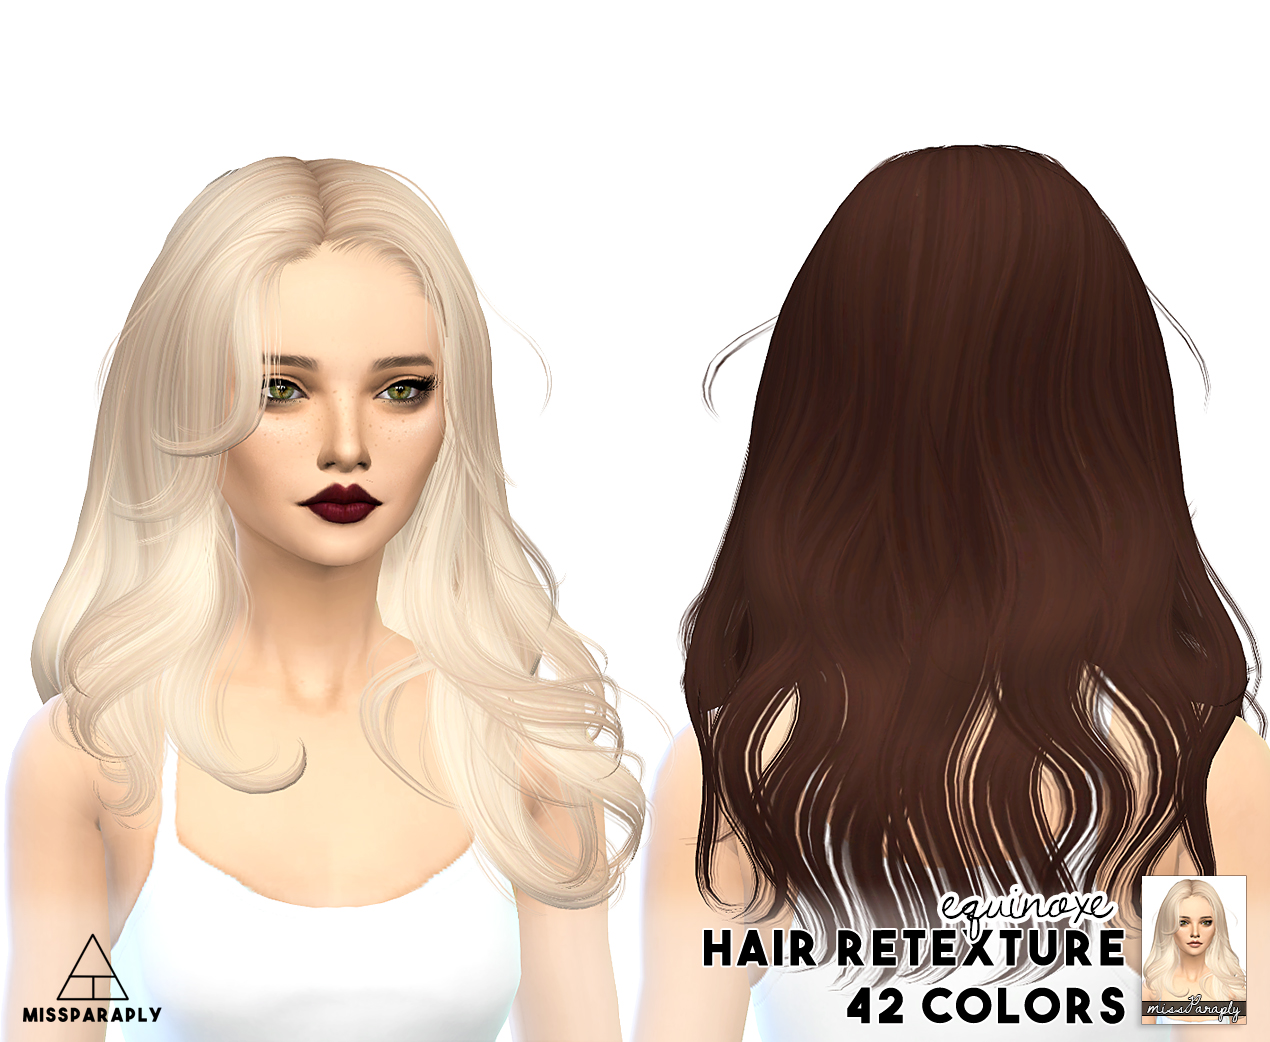 Sims 4 Hairs Miss Paraply Newsea Hairs Retextured